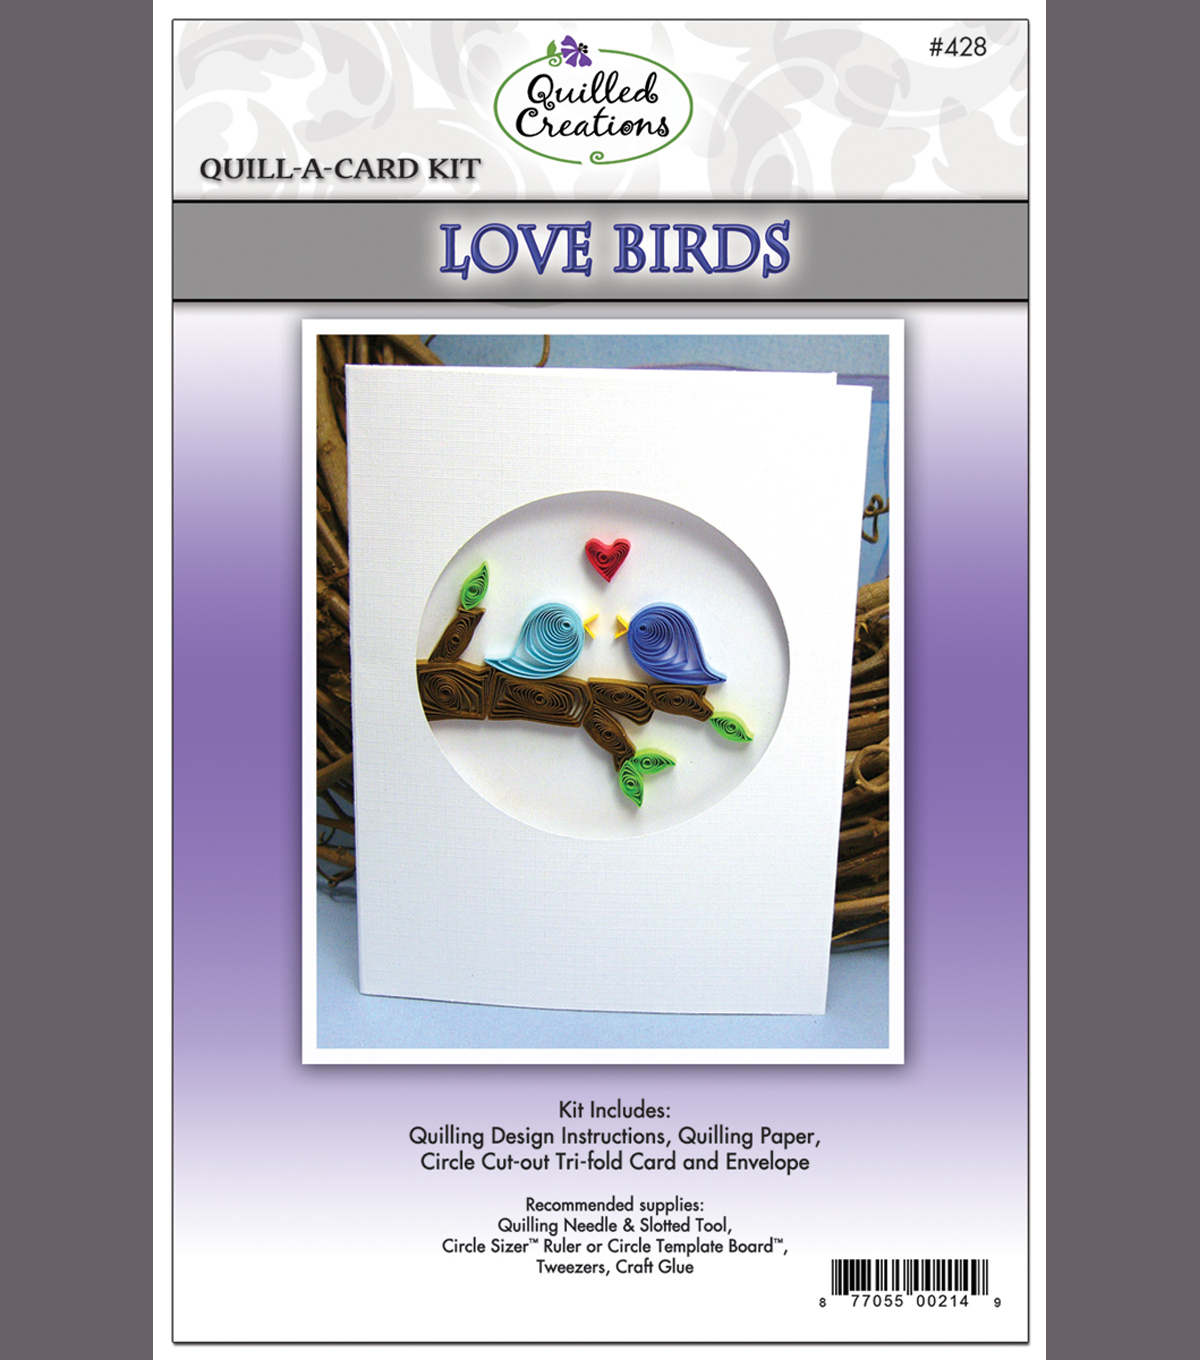 LOVE BIRDS-QUILL-A-CARD KIT